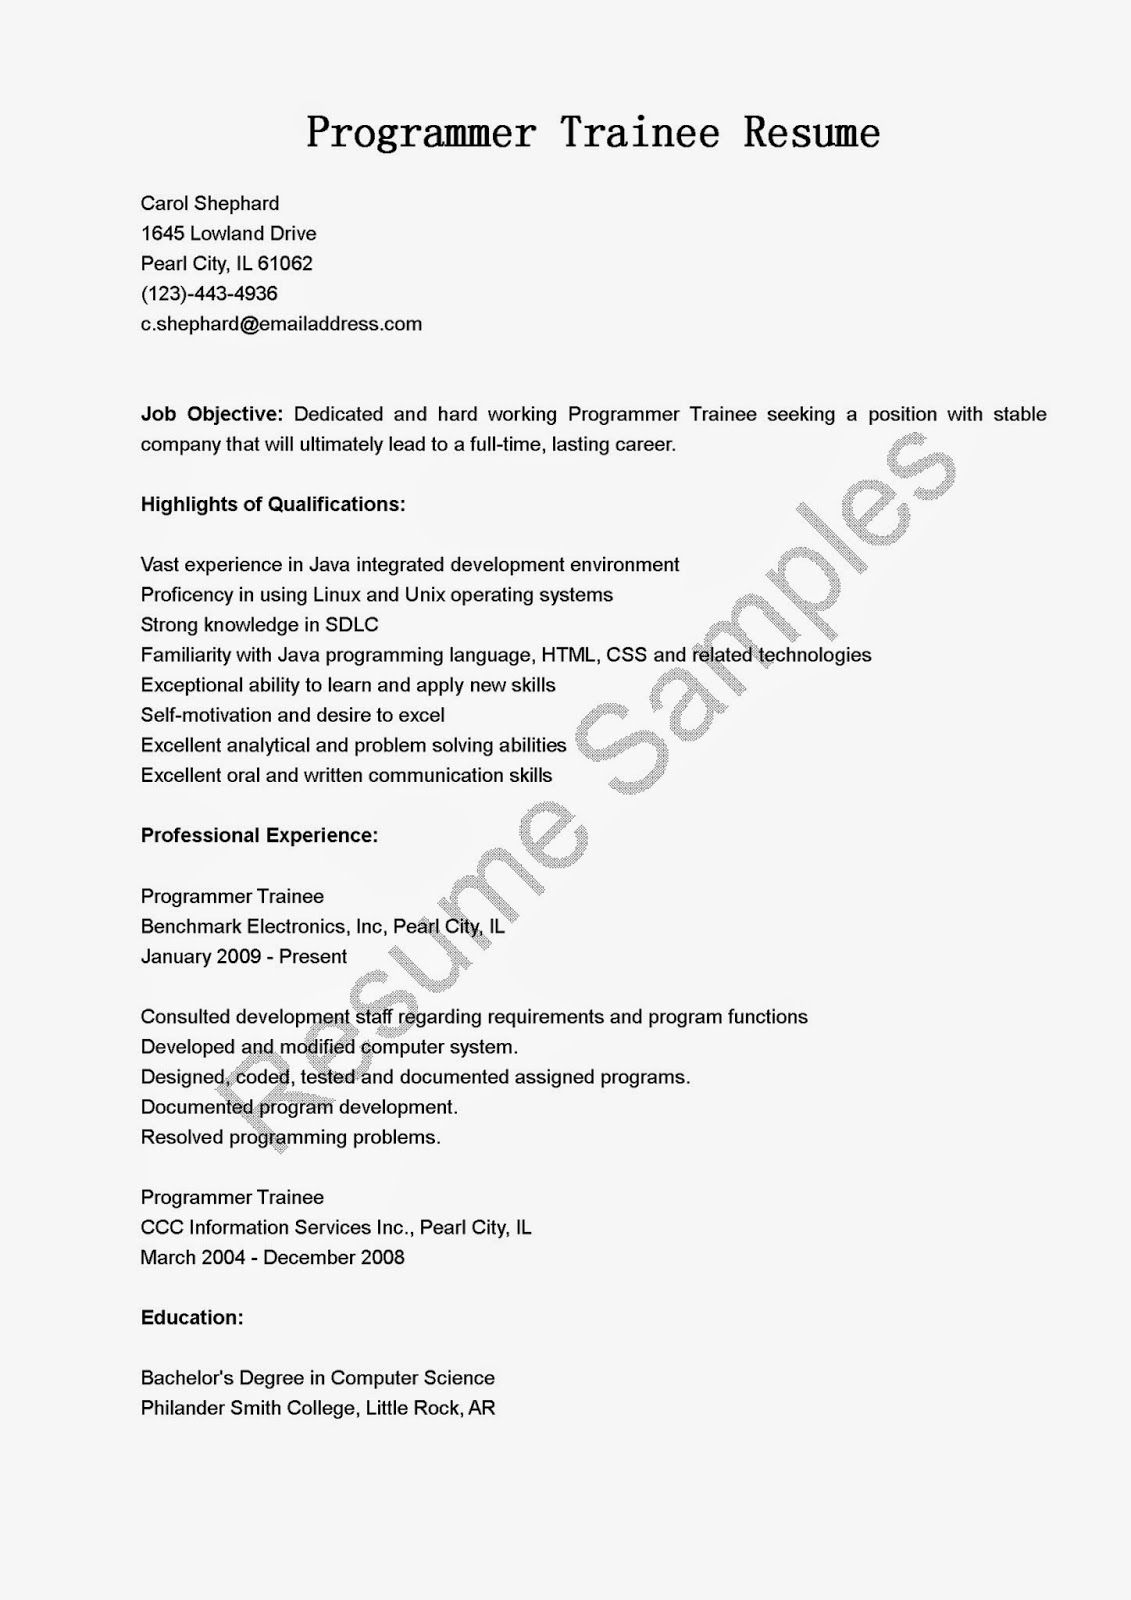 As400 Administration Sample Resume Programmer Trainee Resume Sample Resume Samples  Resame